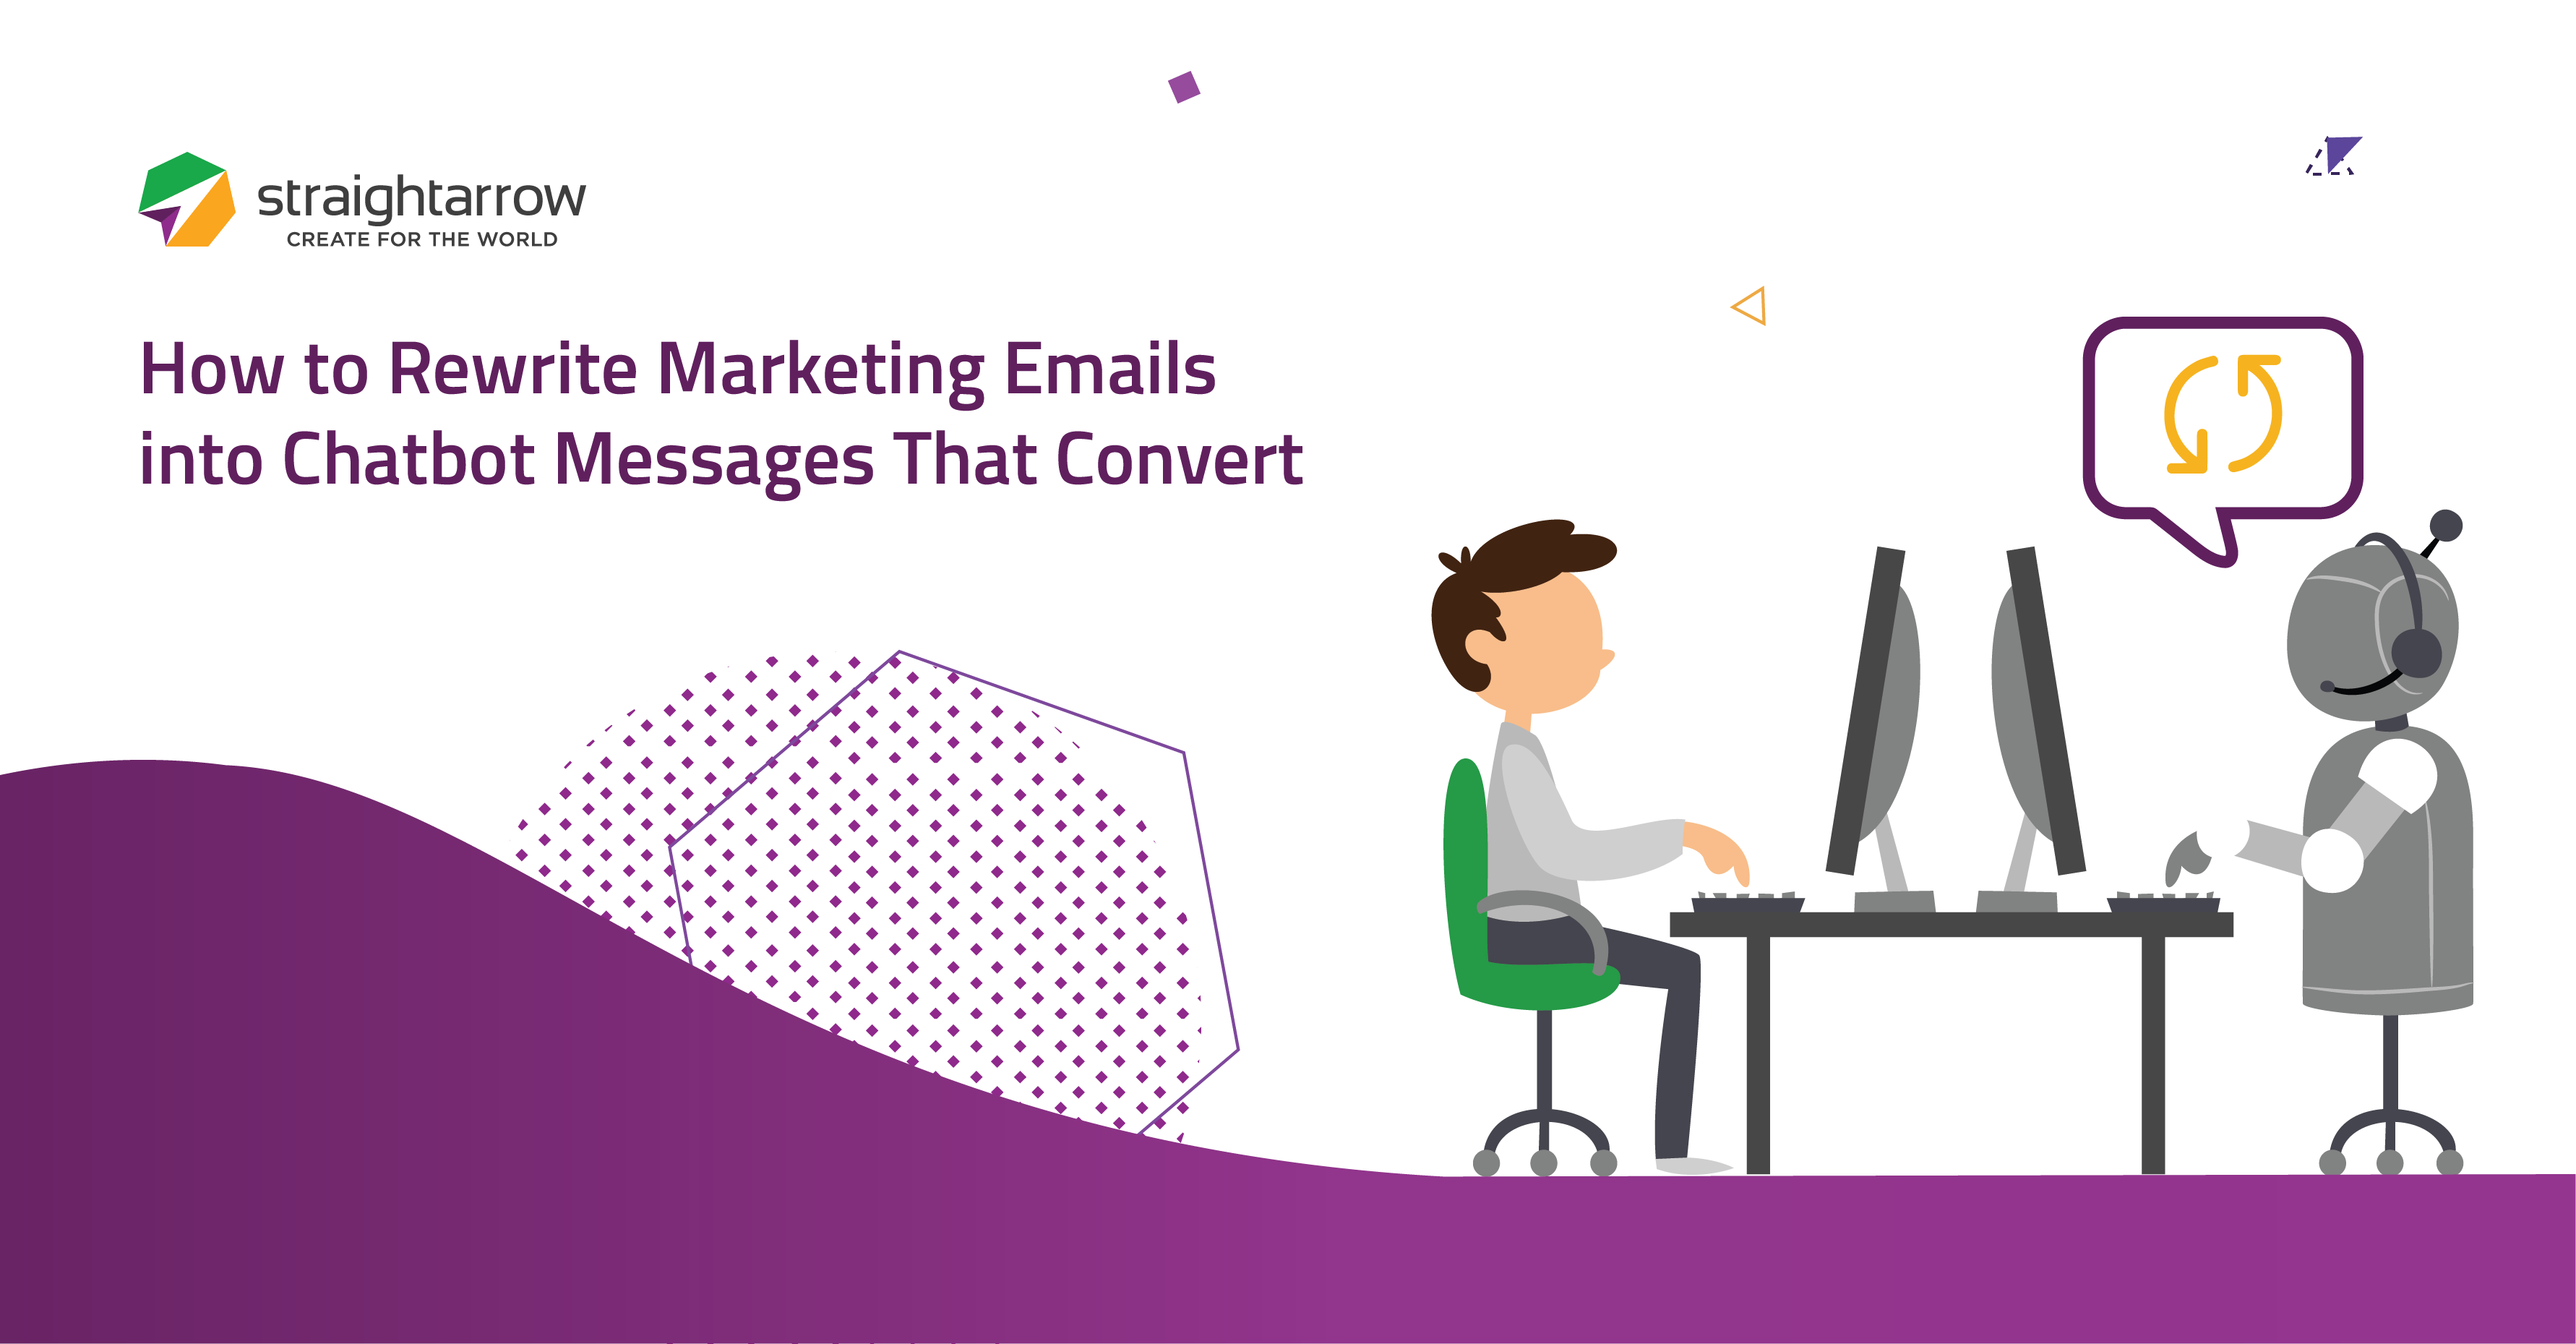 How to Rewrite Marketing Emails into Chatbot Messages That Convert